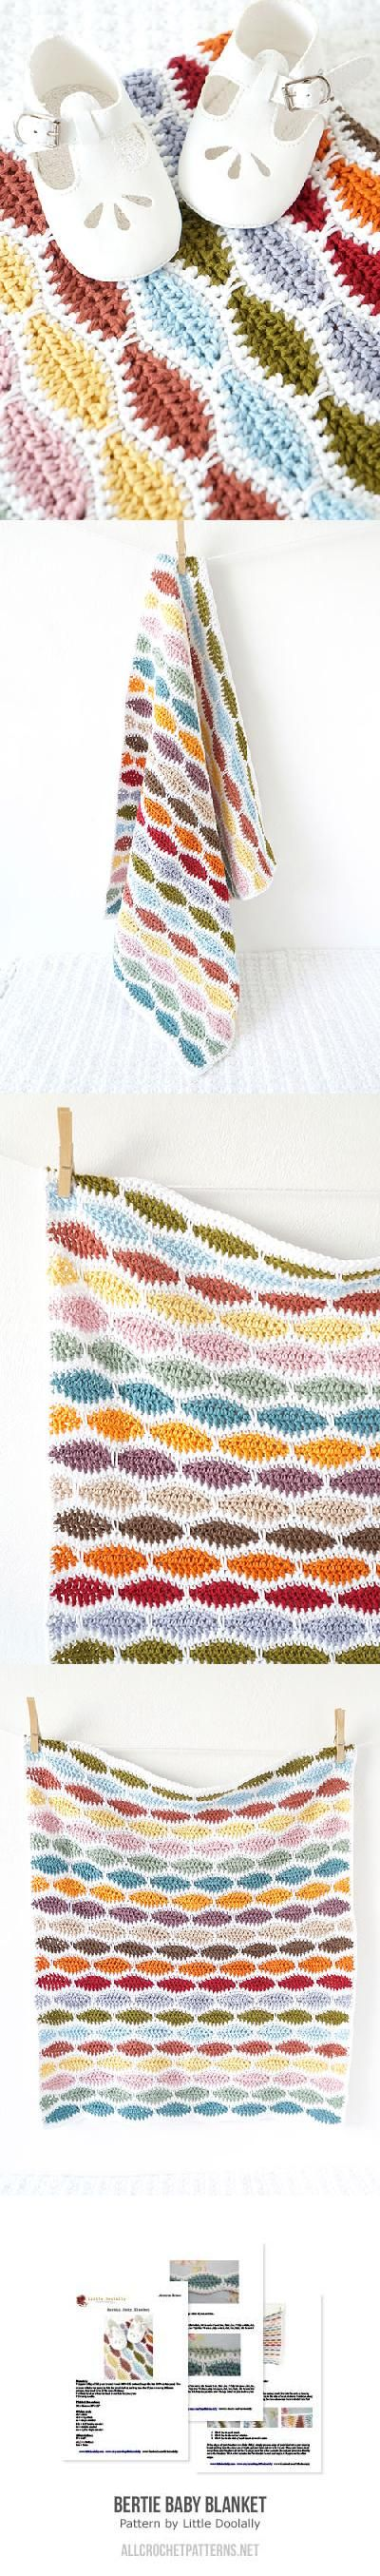 Bertie Baby Blanket crochet pattern by Little Doolally | Decken ...